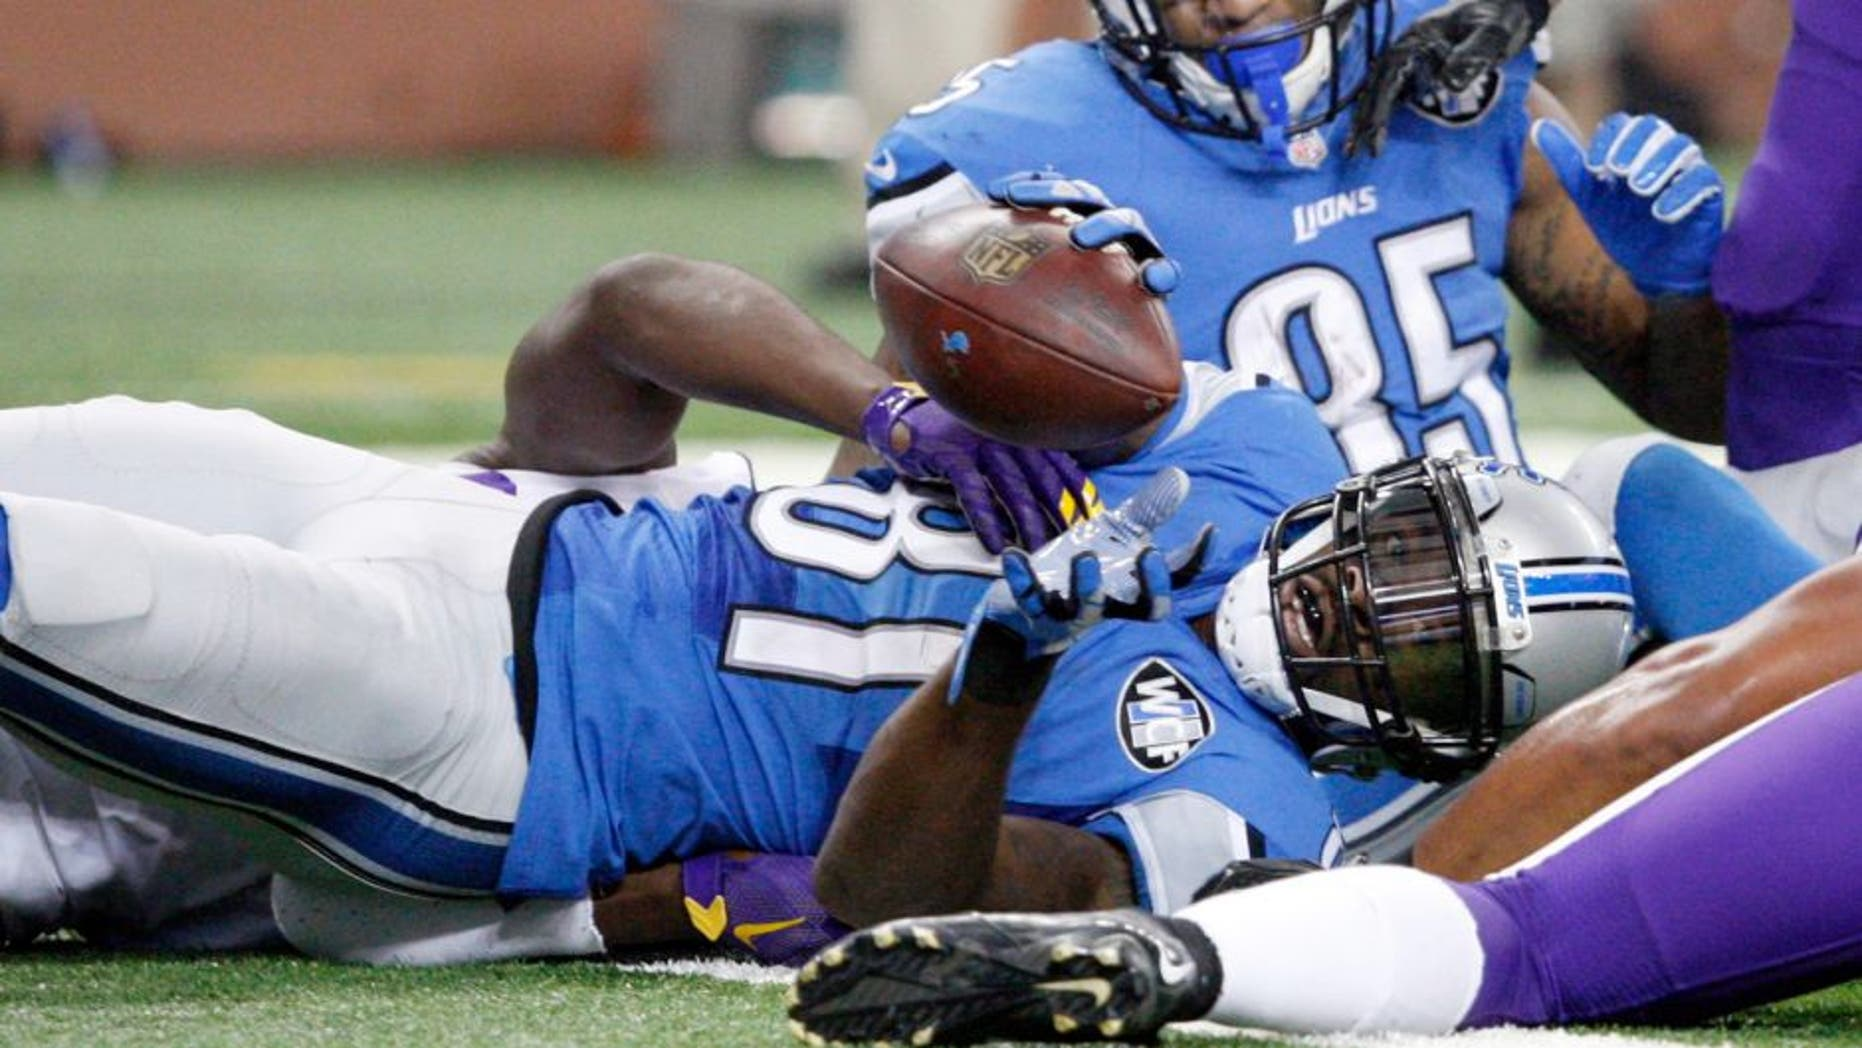 Oct 25, 2015; Detroit, MI, USA; Detroit Lions wide receiver Calvin Johnson (81) lays on the goal line during the fourth quarter against the Minnesota Vikings at Ford Field. Vikings win 28-19. Mandatory Credit: Raj Mehta-USA TODAY Sports